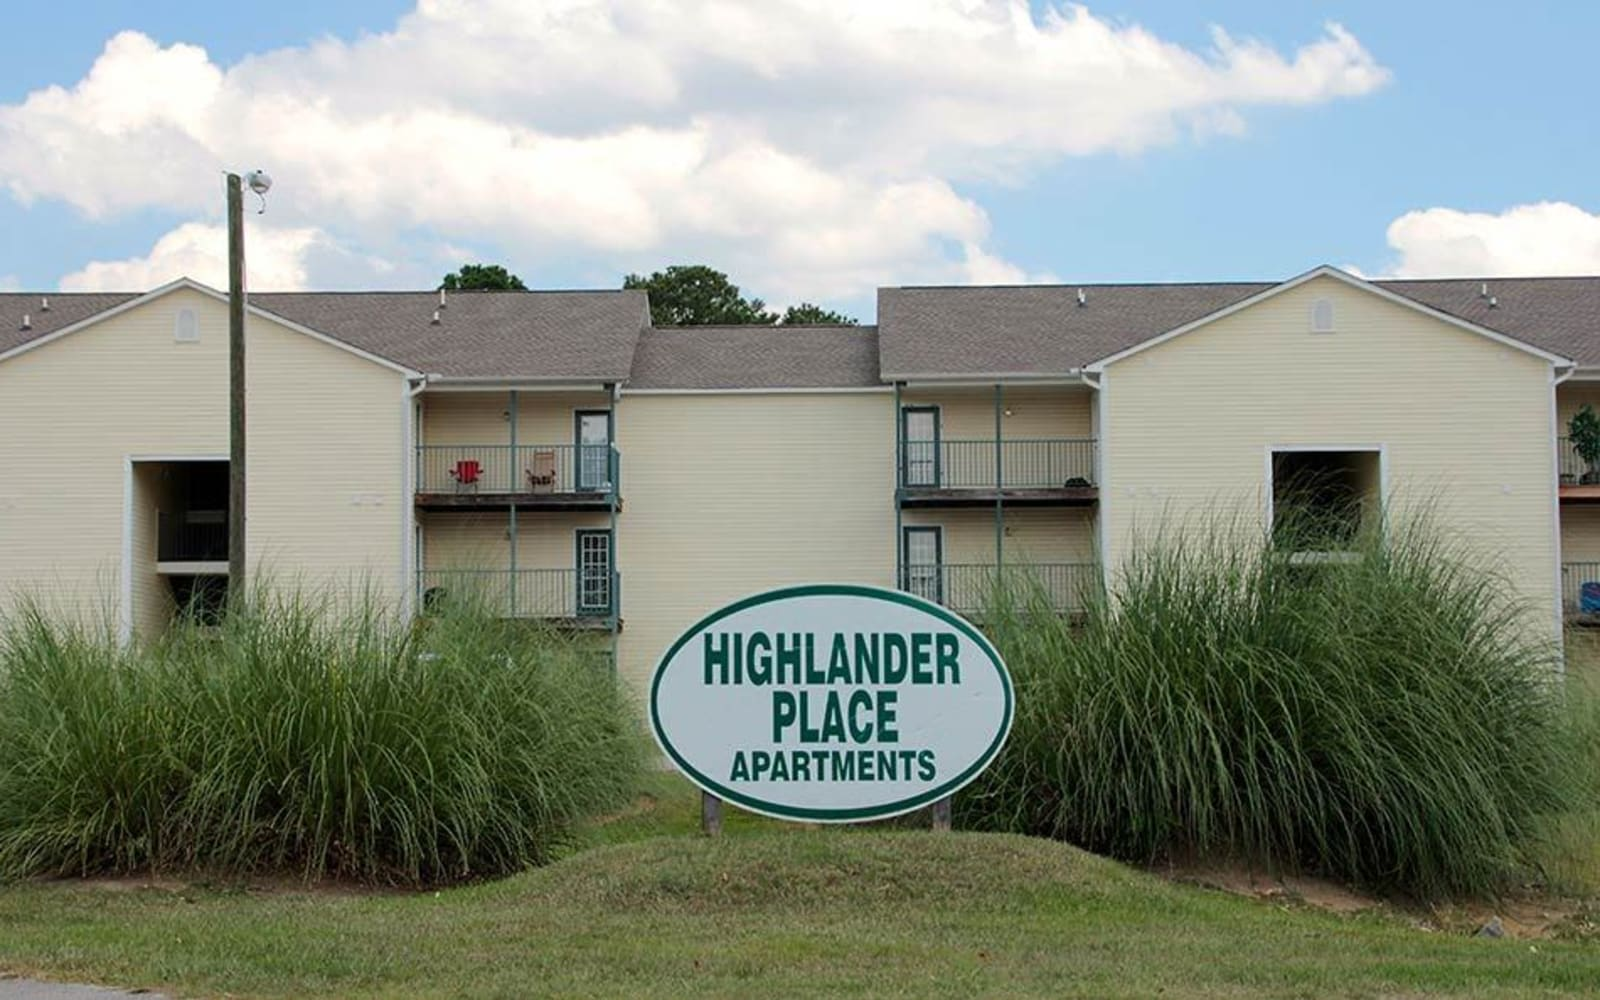 Sign in front of building at Highlander Apartments in Fayetteville, North Carolina